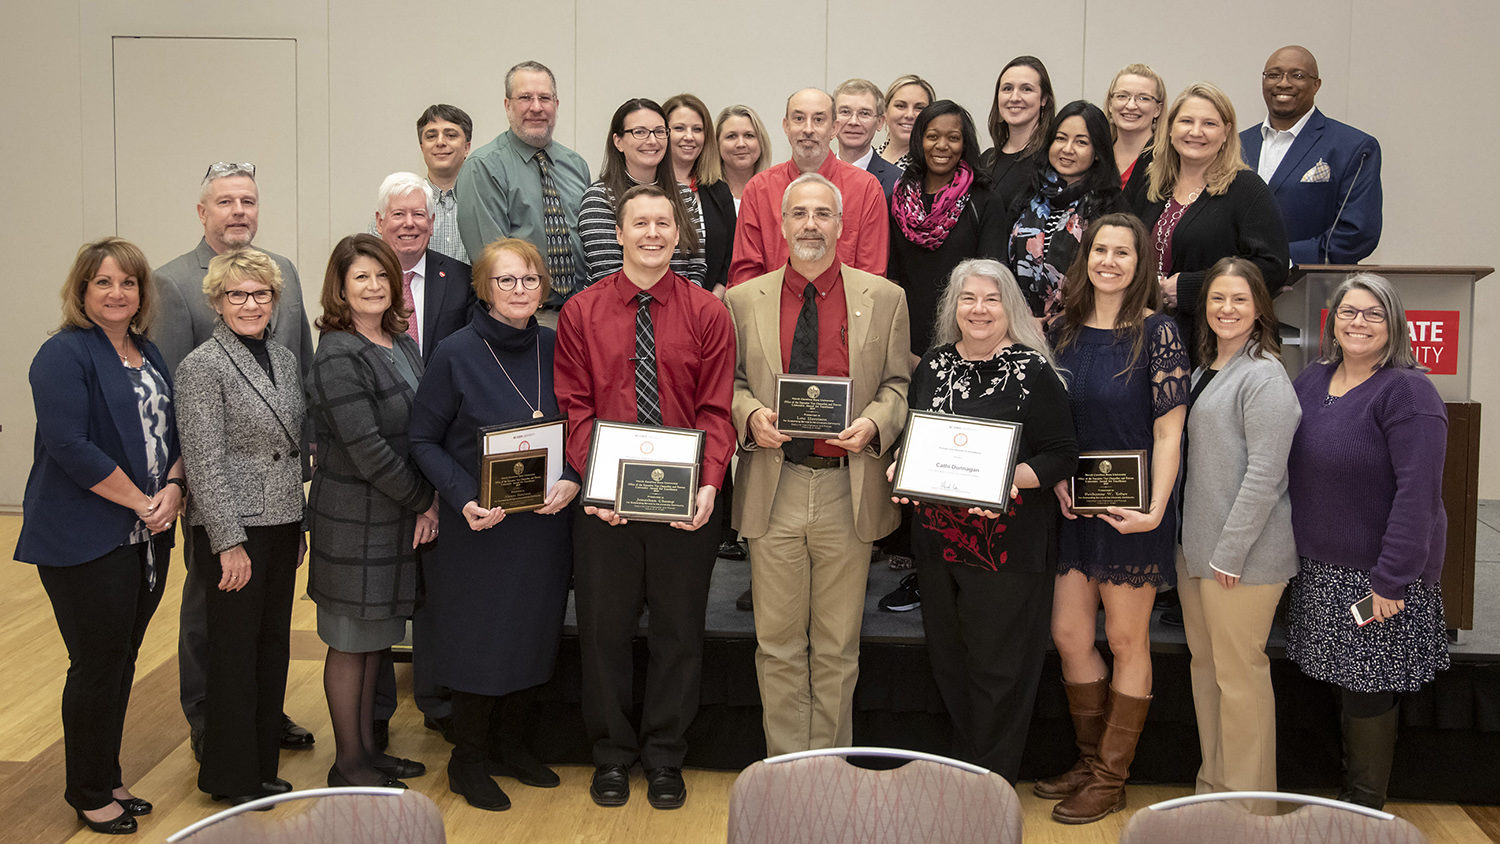 Provost Unit Awards for Excellence winners